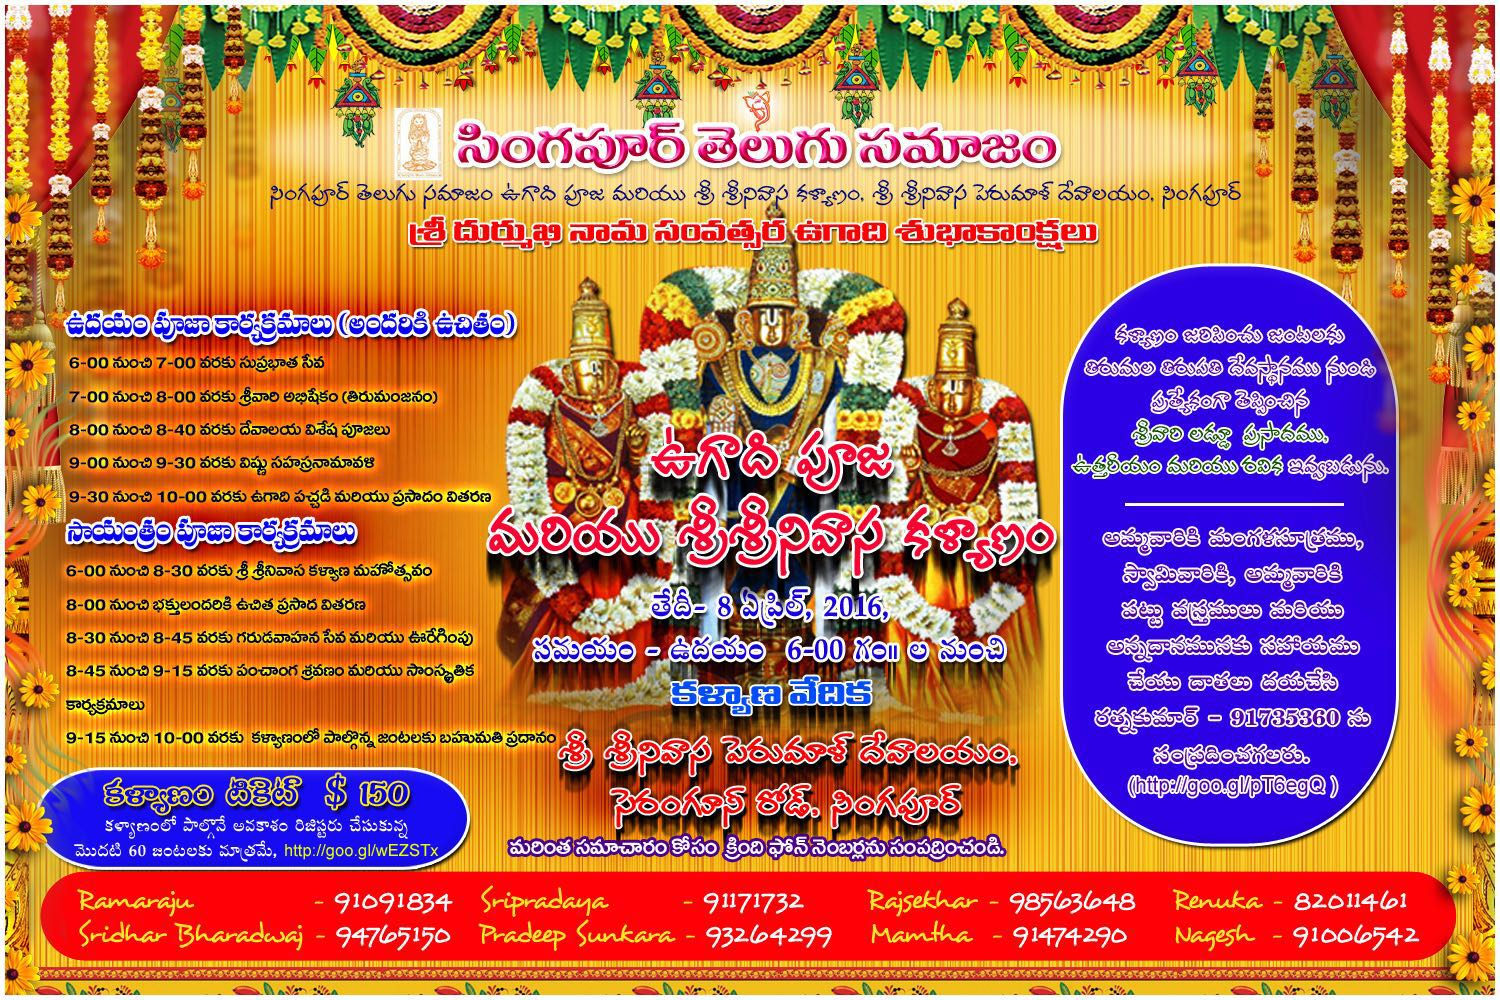 Ugadi and Sri Srinivasa Kalyanotsavam 2016